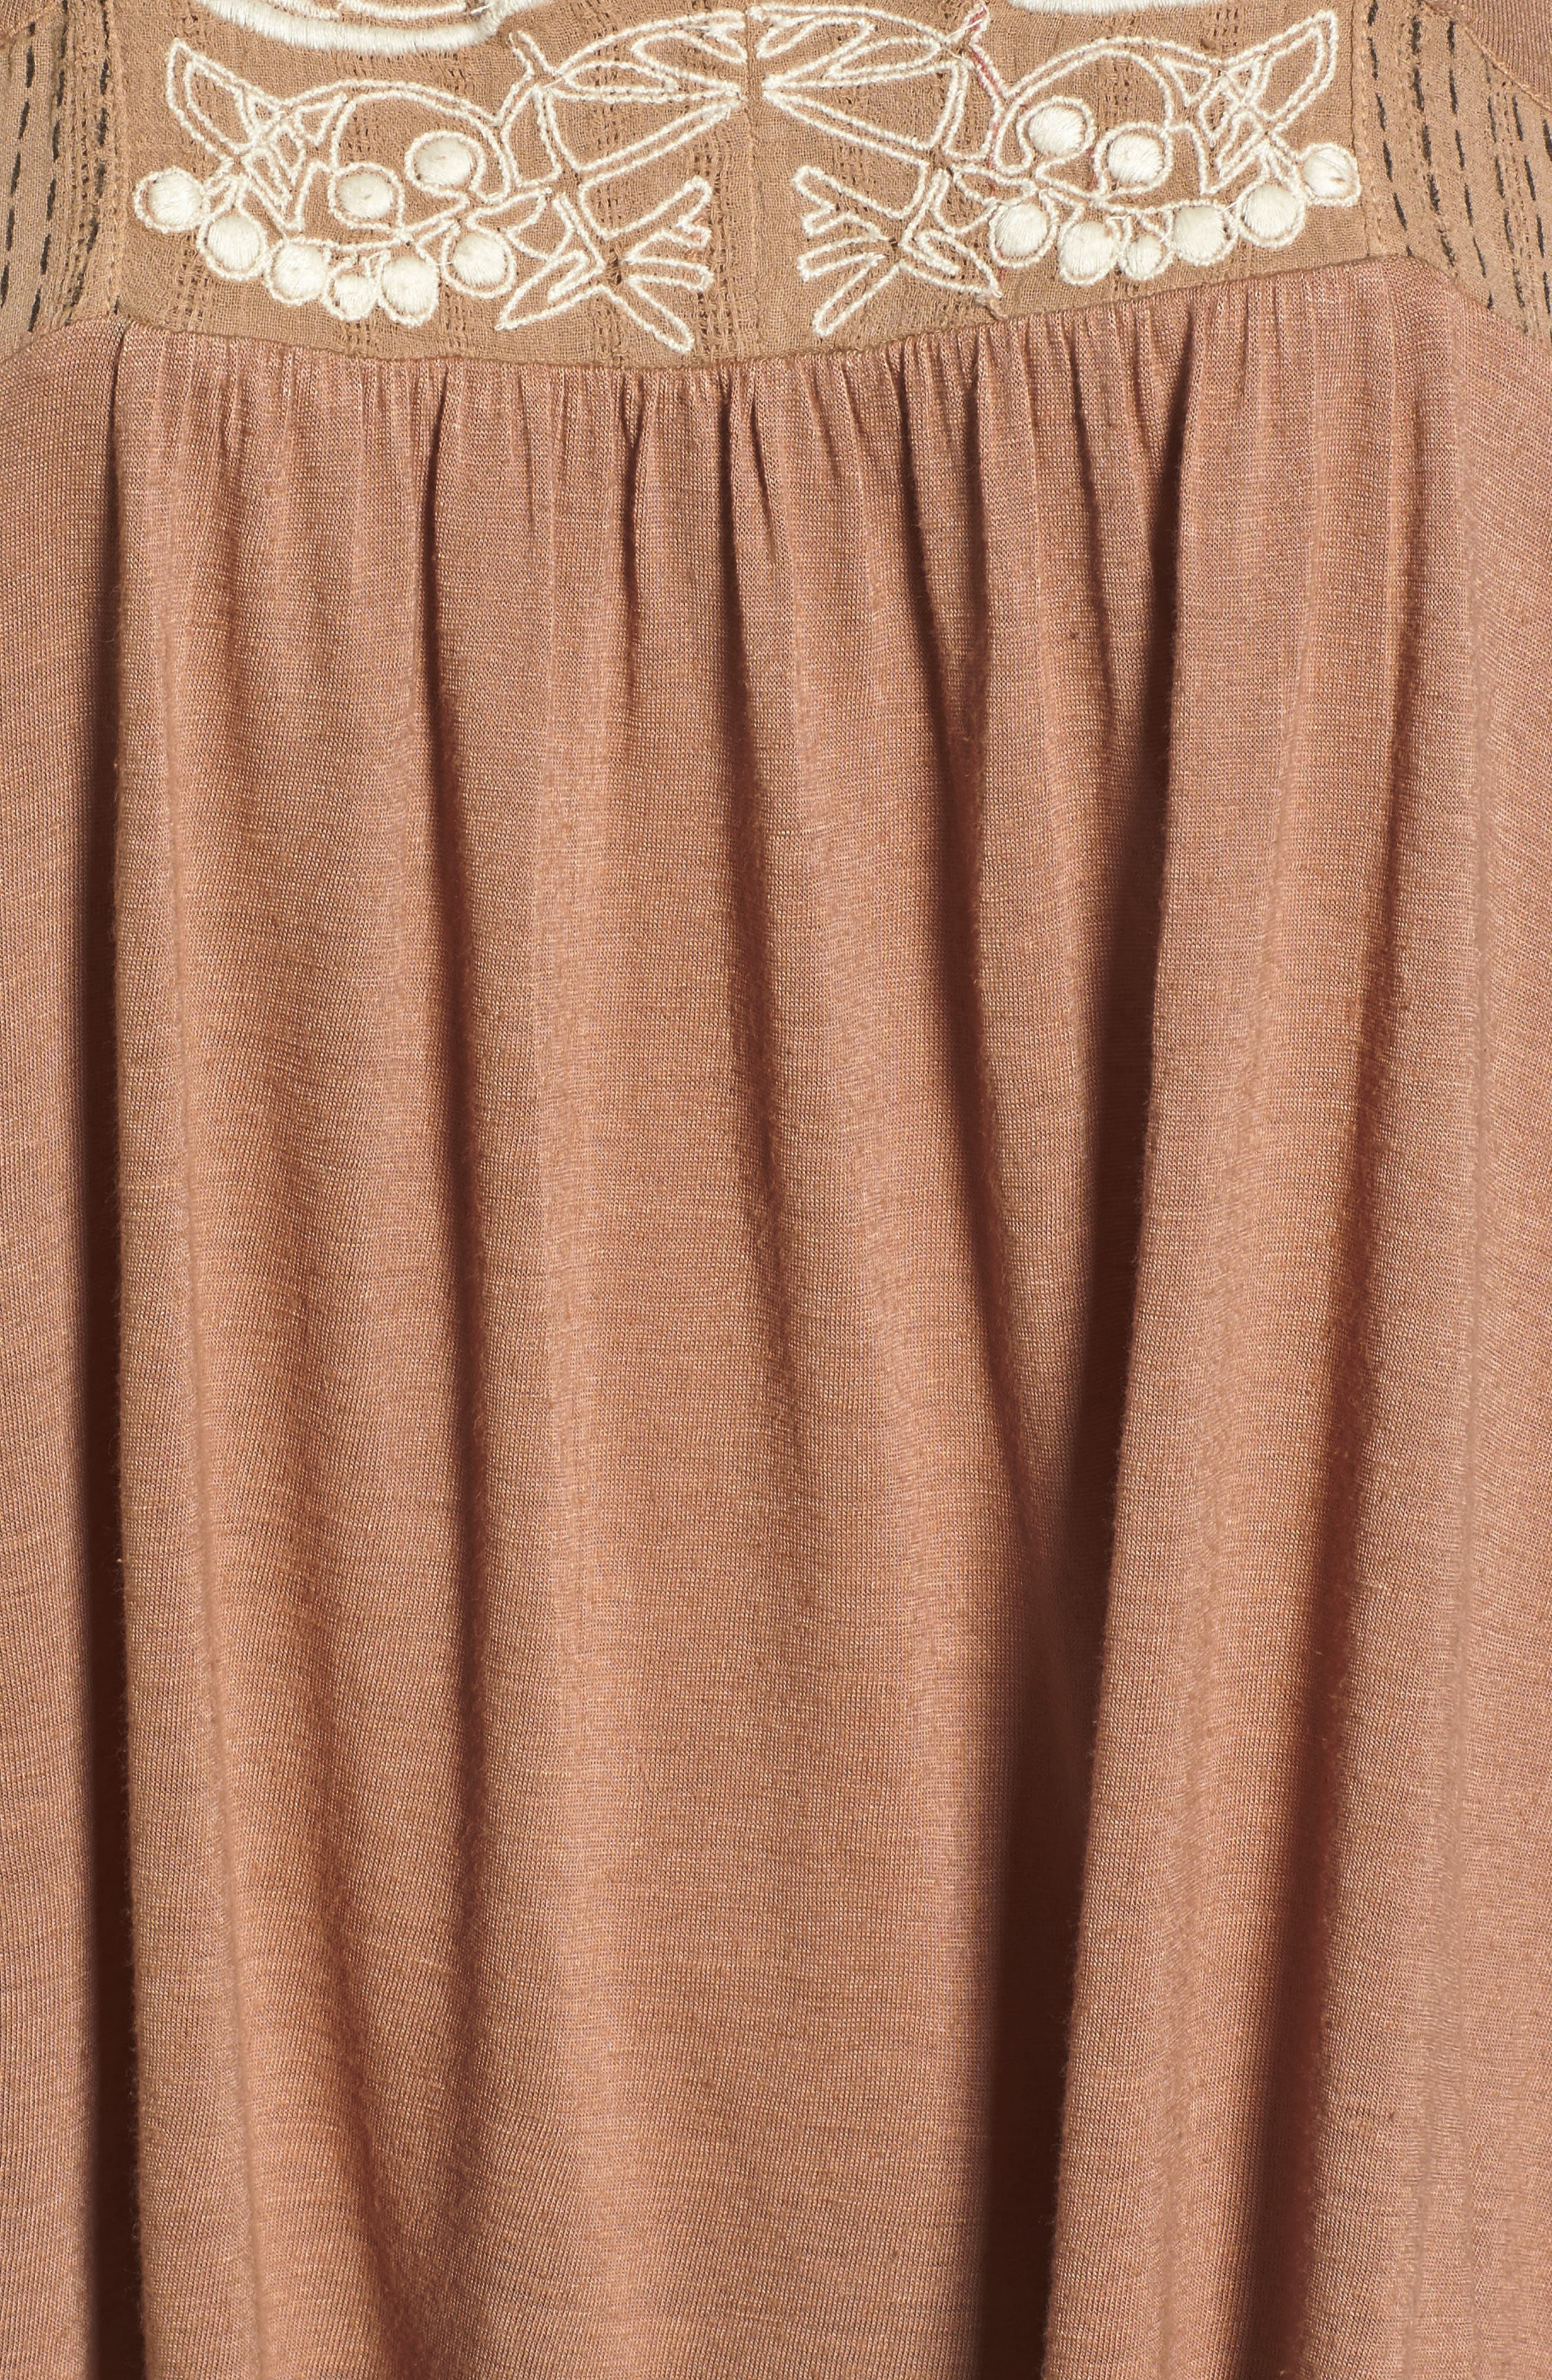 Embroidered Shell,                             Alternate thumbnail 5, color,                             Toffee Blush